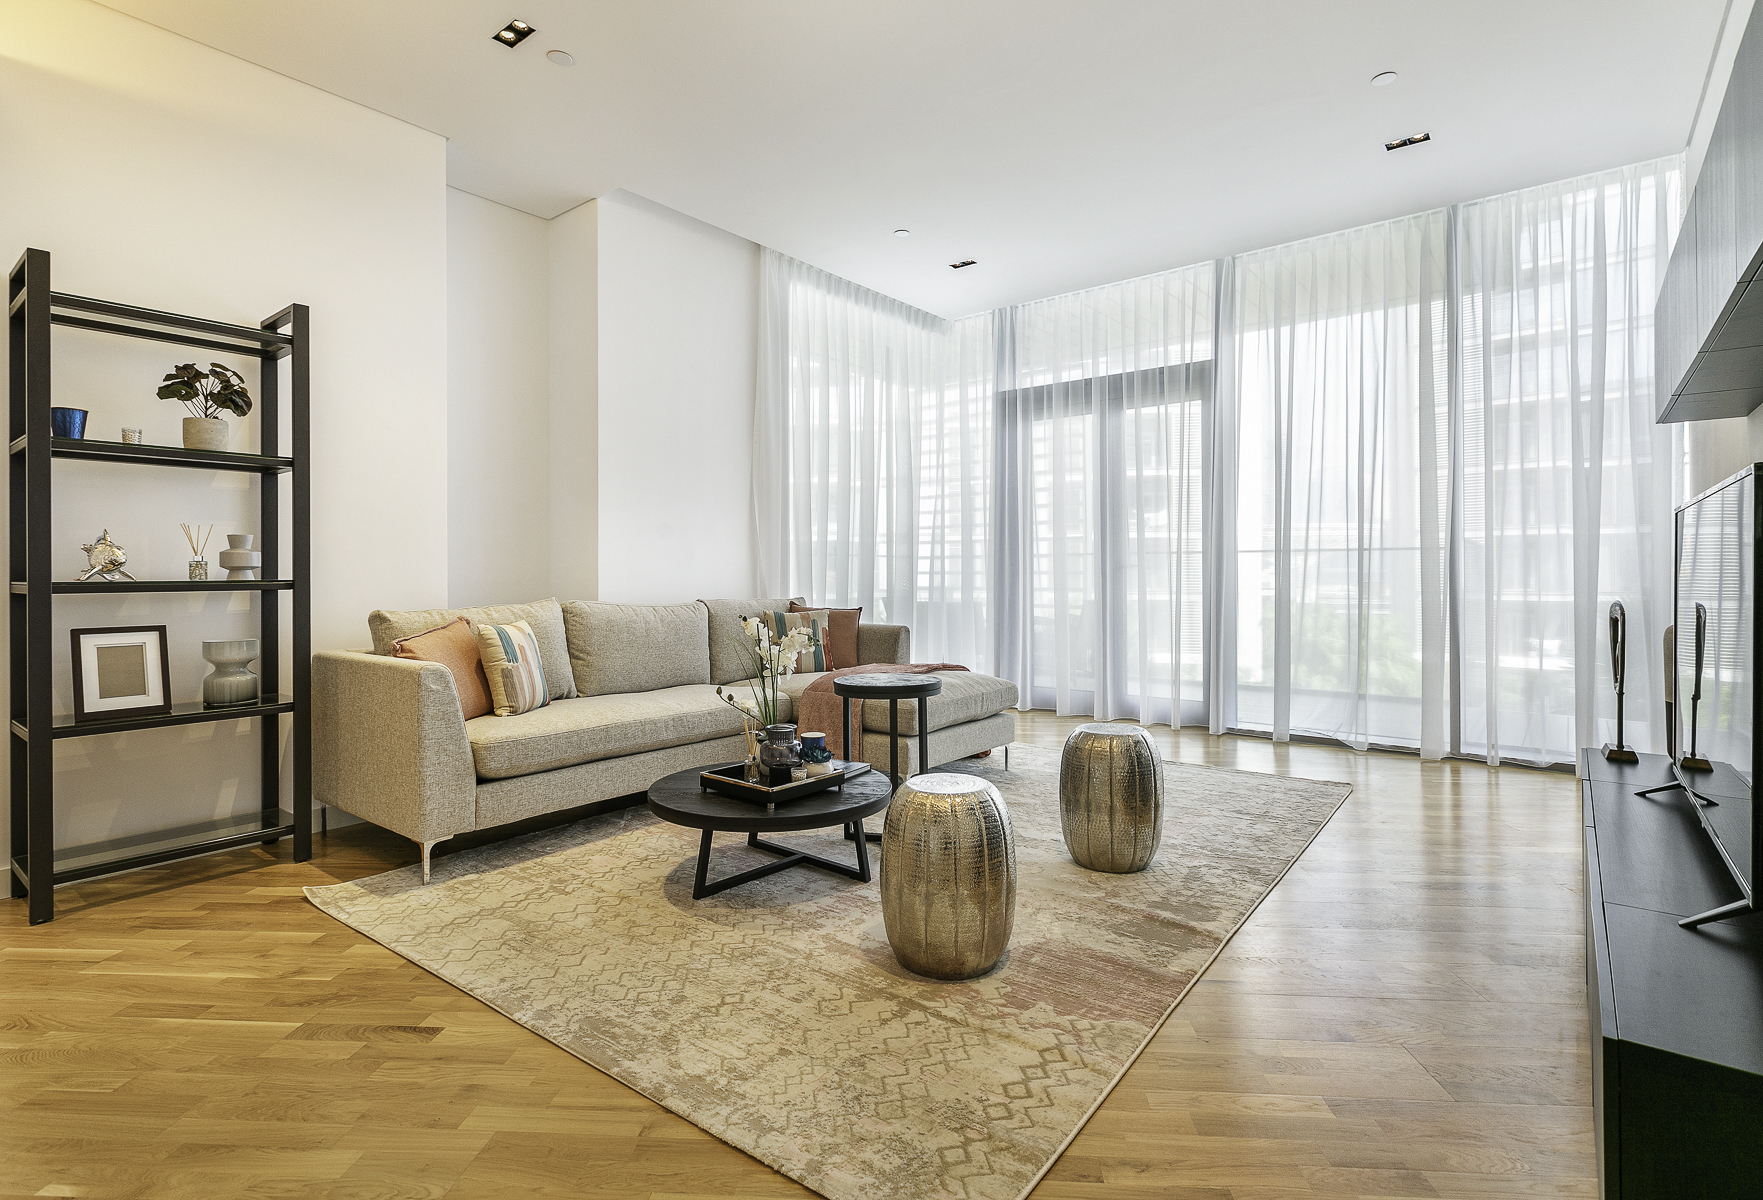 Experience the Bluewaters lifestyle On This All New 1 Bed in Building 5 photo 20221658